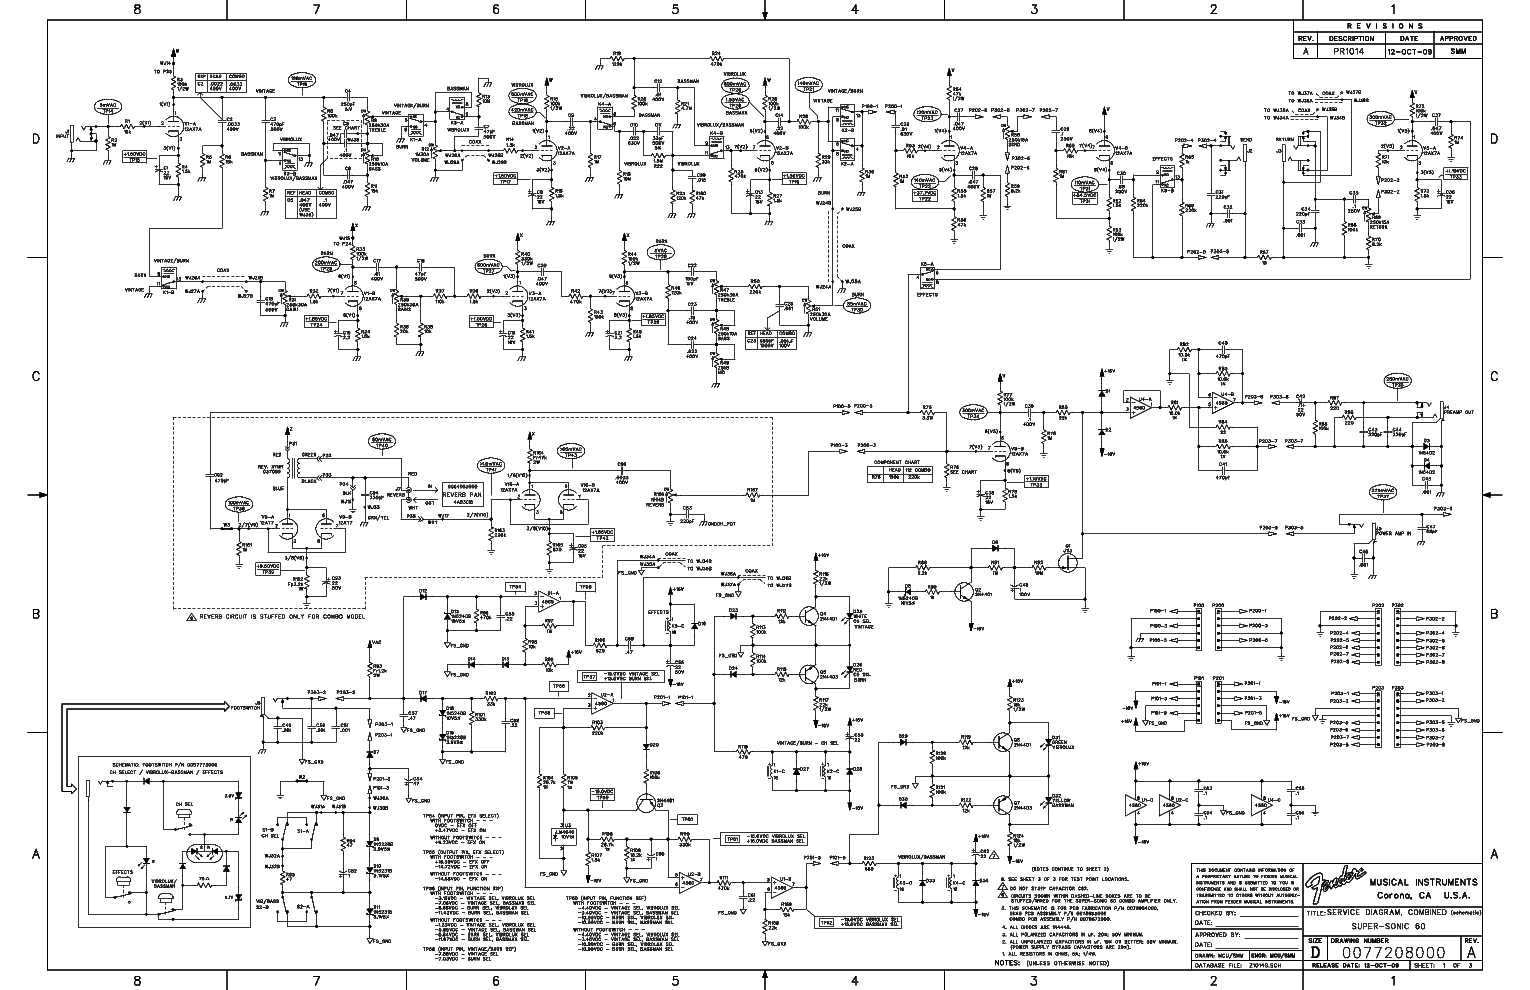 FENDER SUPER-SONIC 60 COMBO SCHEMATIC REV-A Service Manual download on